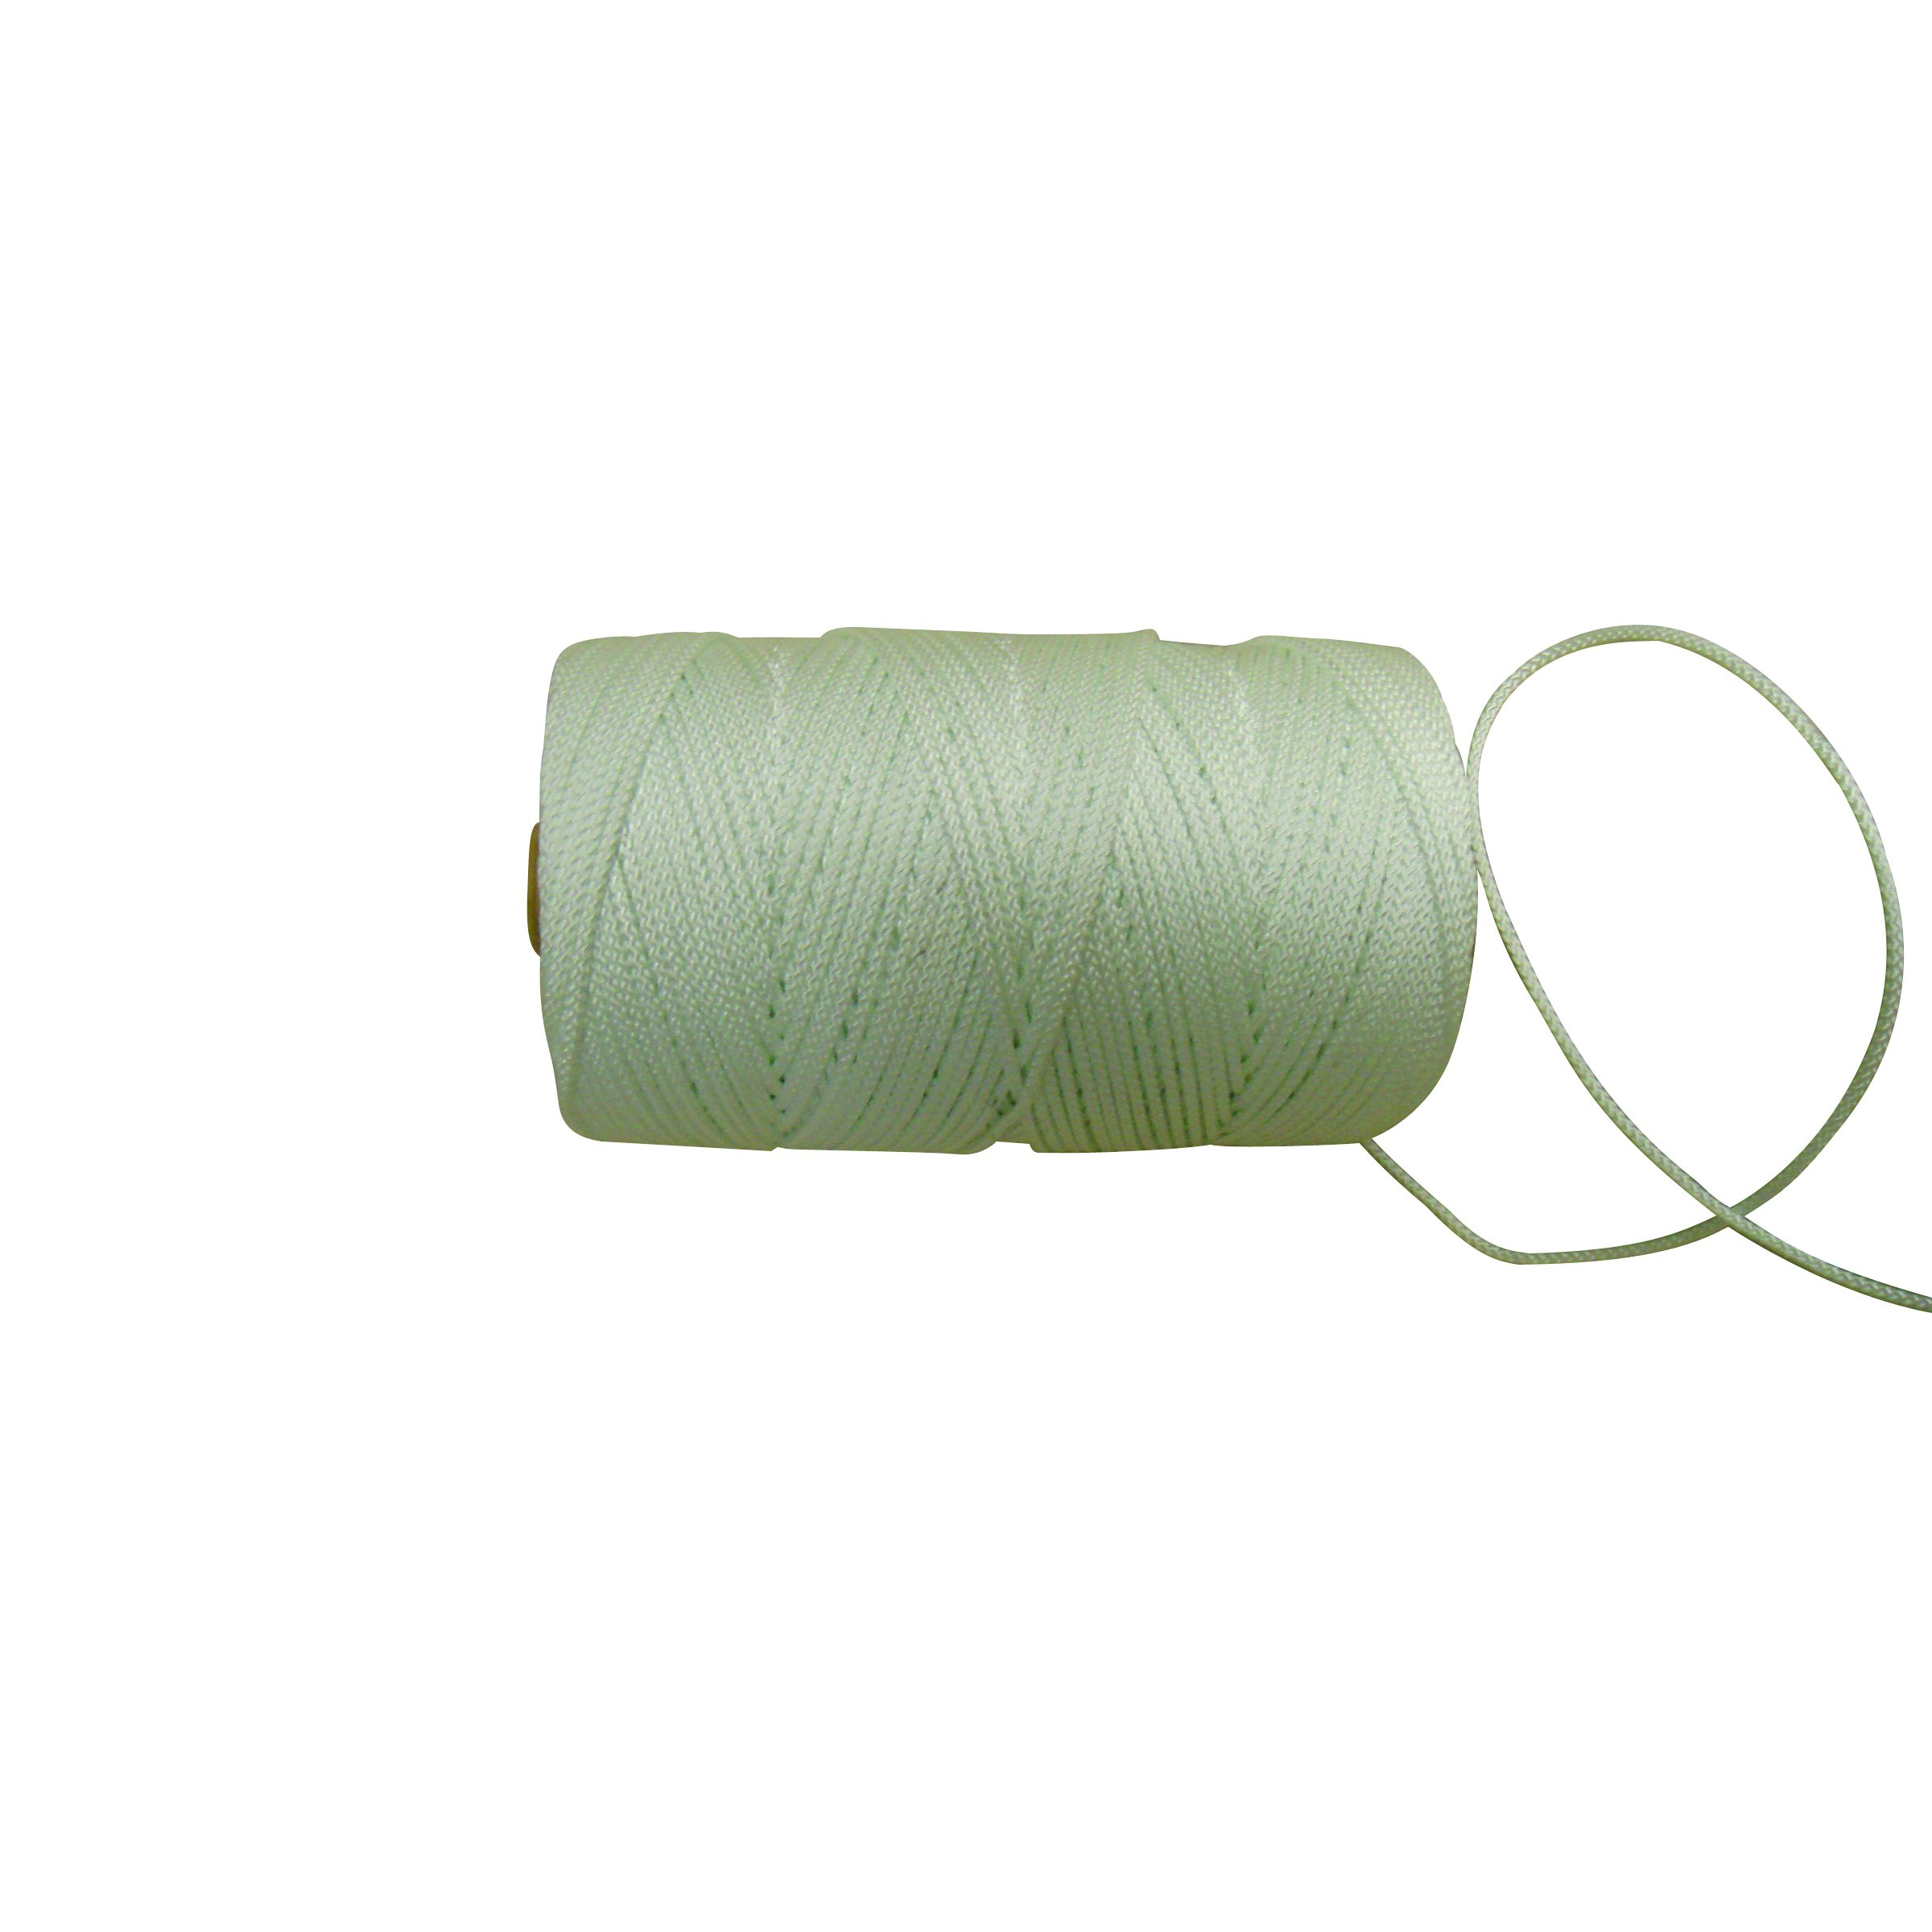 Bon 22-903 1/8'' x 1000' Braided Polyester Twine with Core by BON